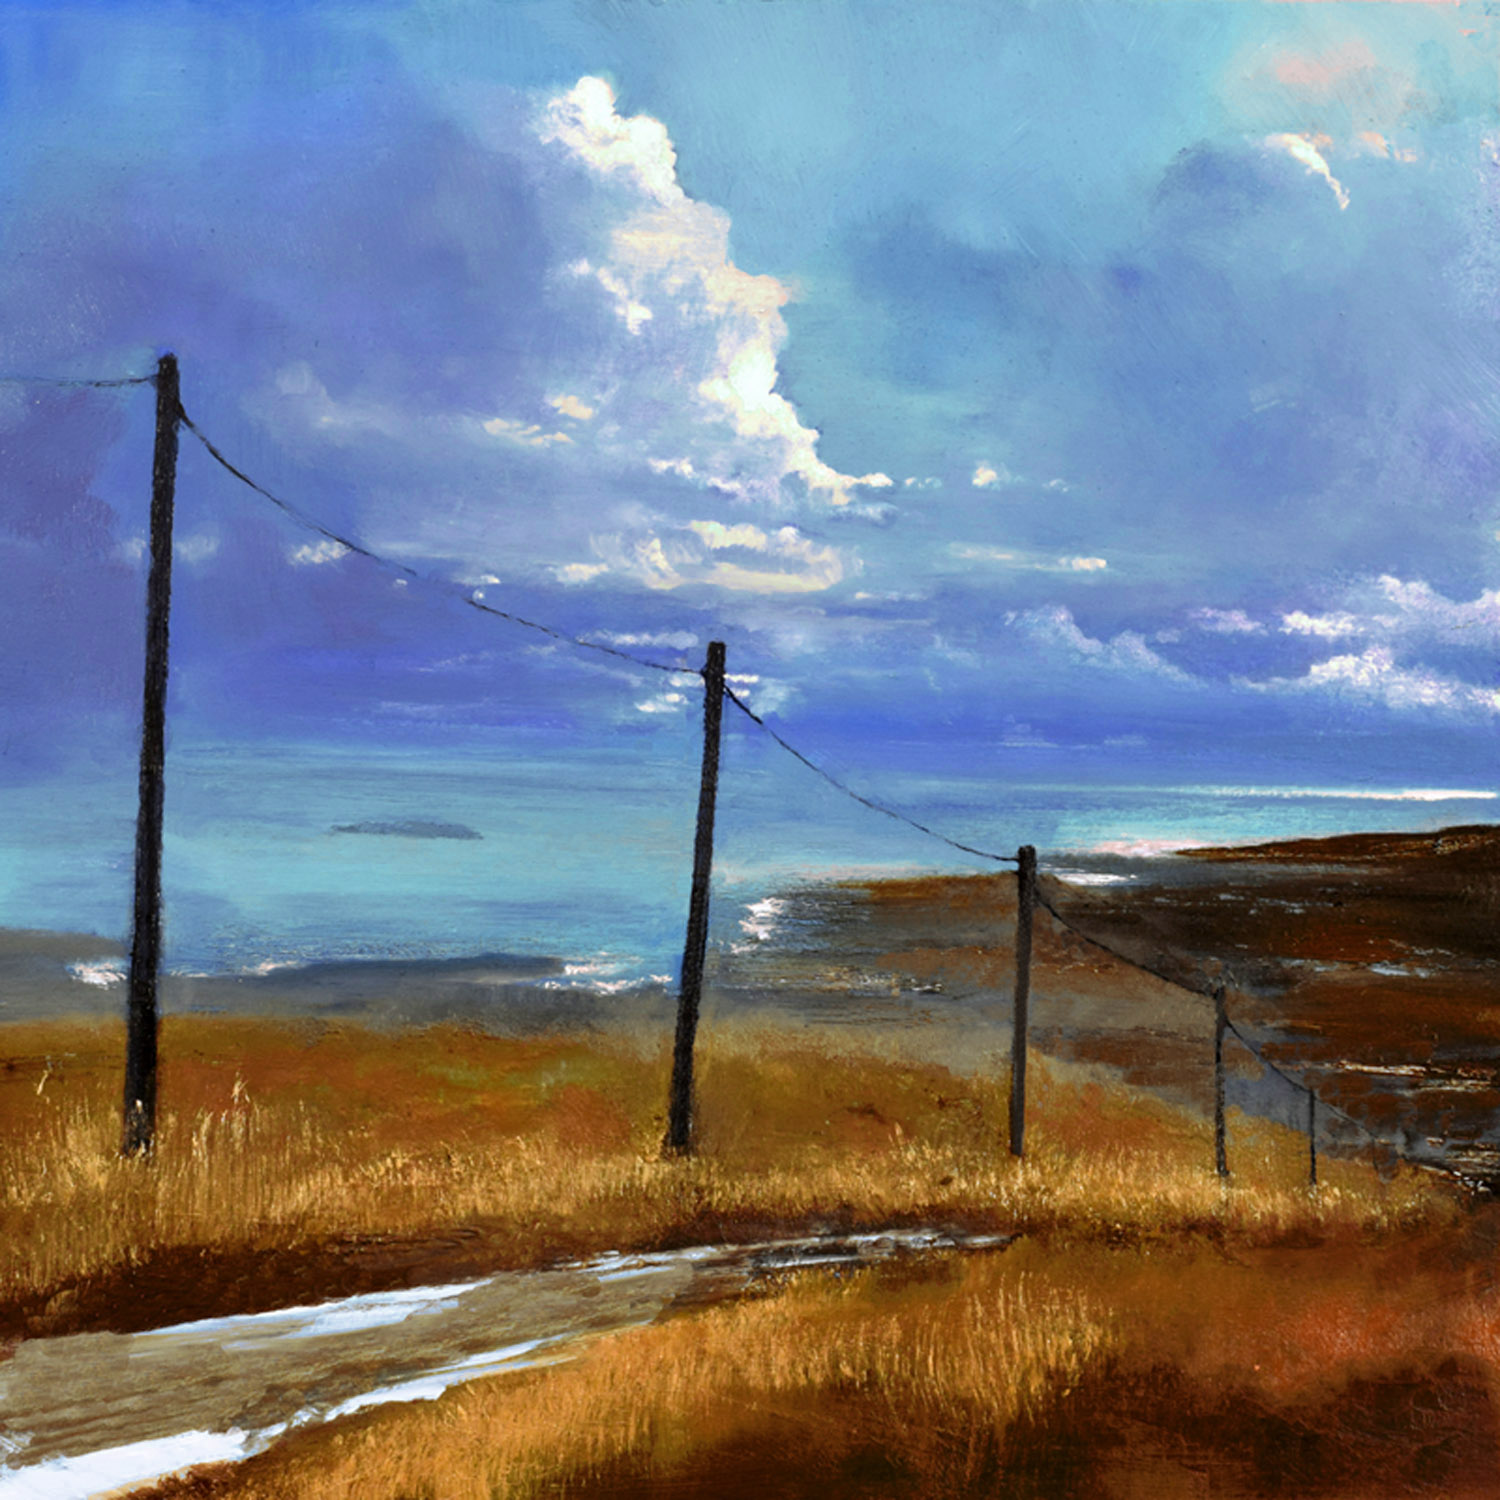 The Road to the Sea III, John O'Grady   A scenic coastal road on a rain-soaked day in the West of Ireland